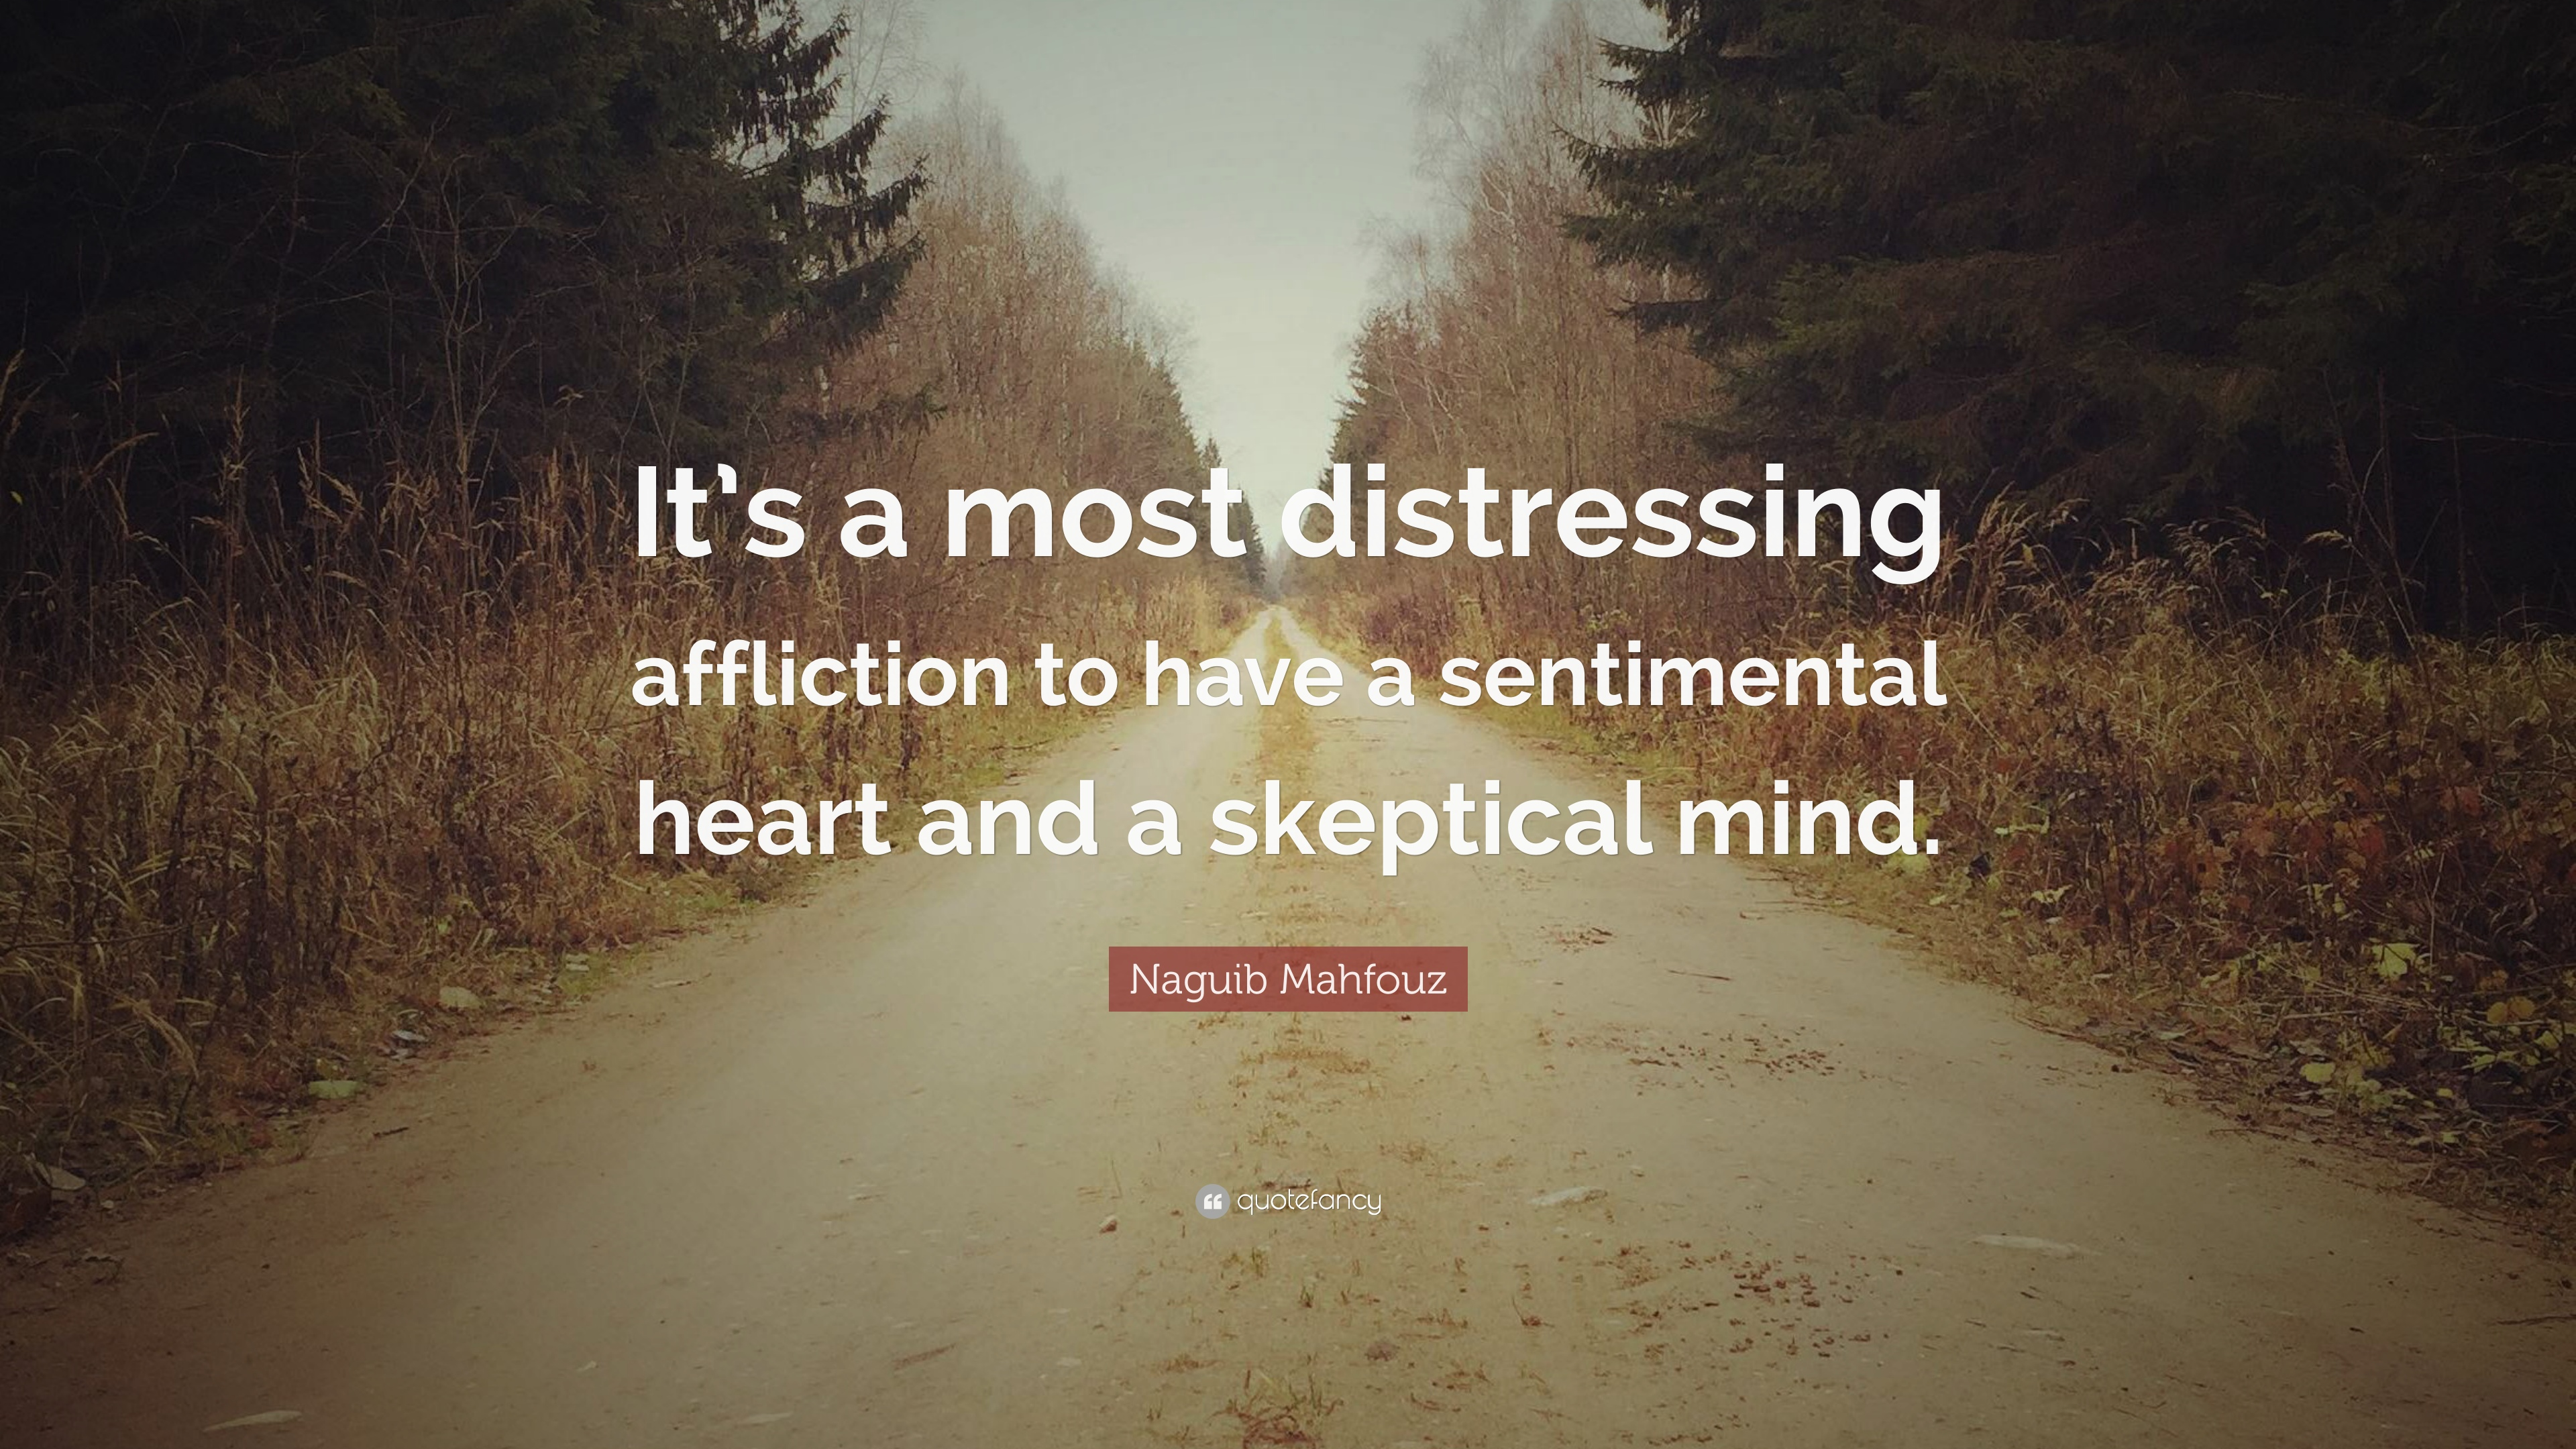 naguib mahfouz quote it s a most distressing affliction to have a